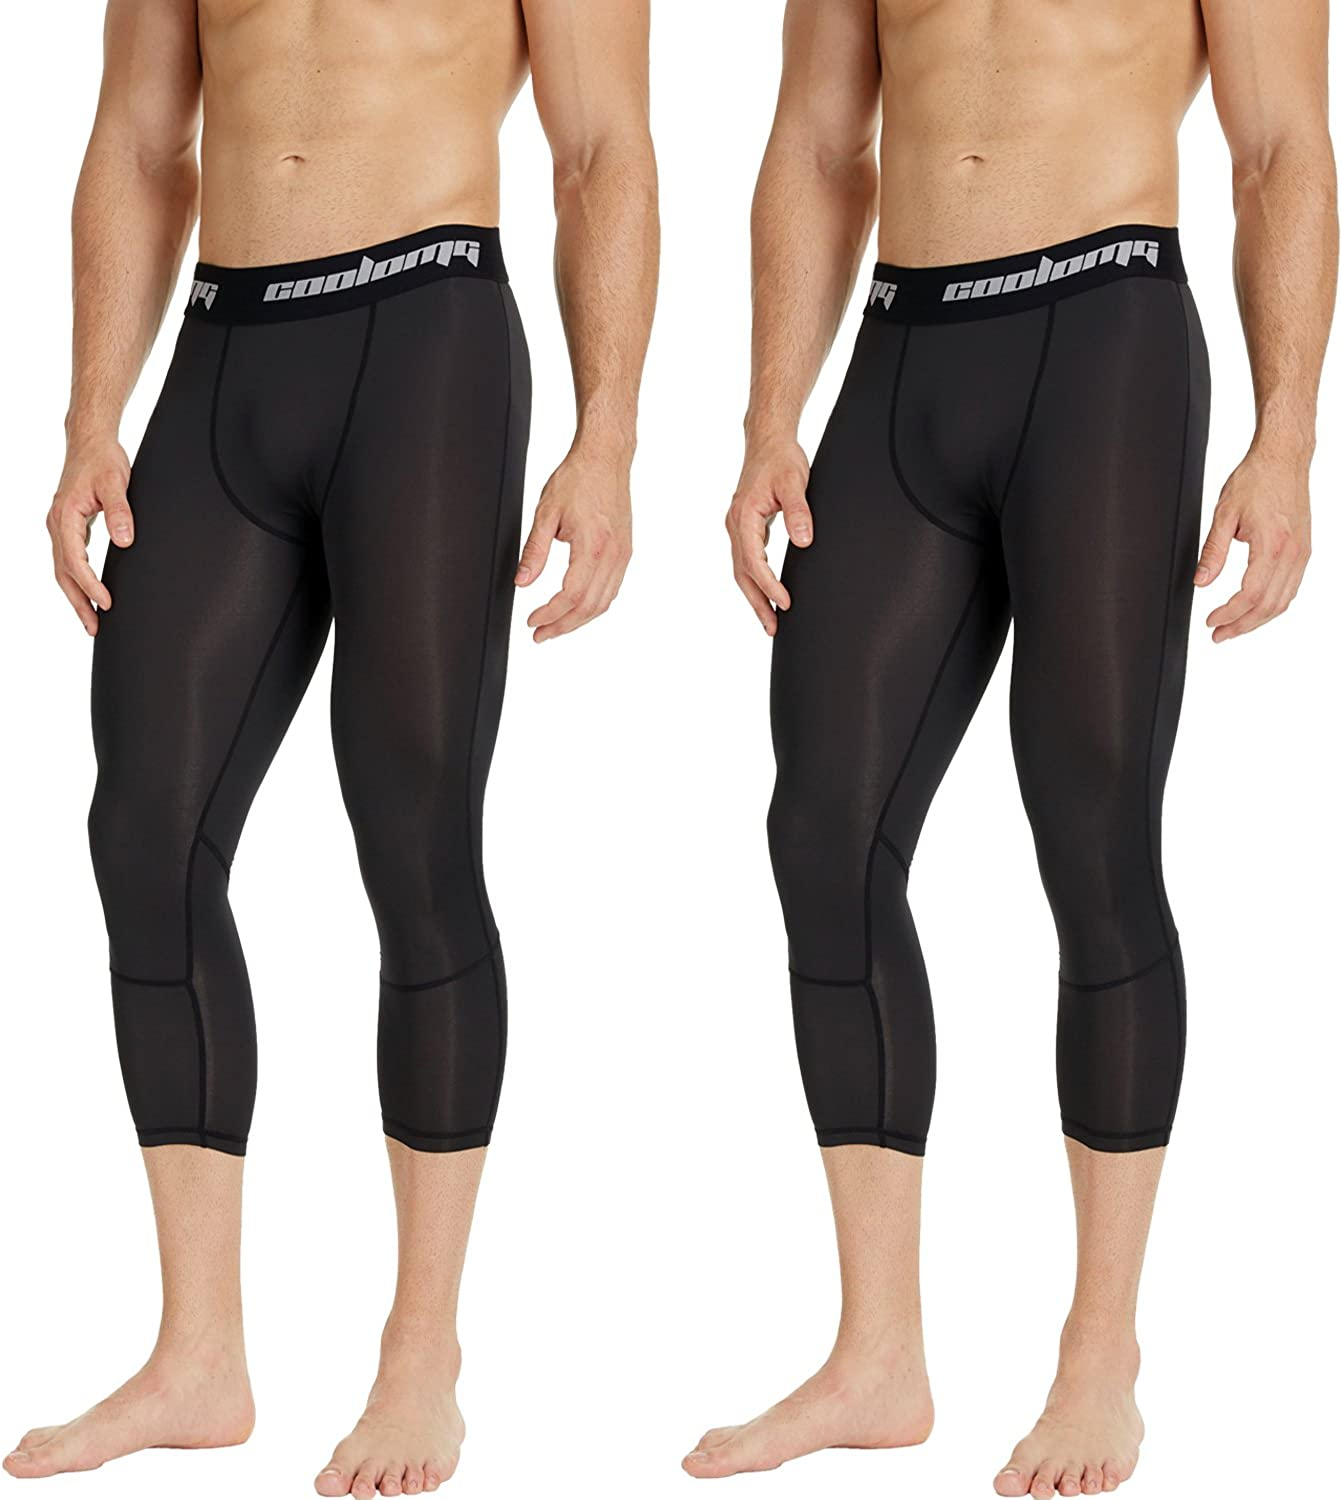 COOLOMG 2 Pack 3 4 trend rank Compression 20+ Pants Colors Pa Product Tights Sports